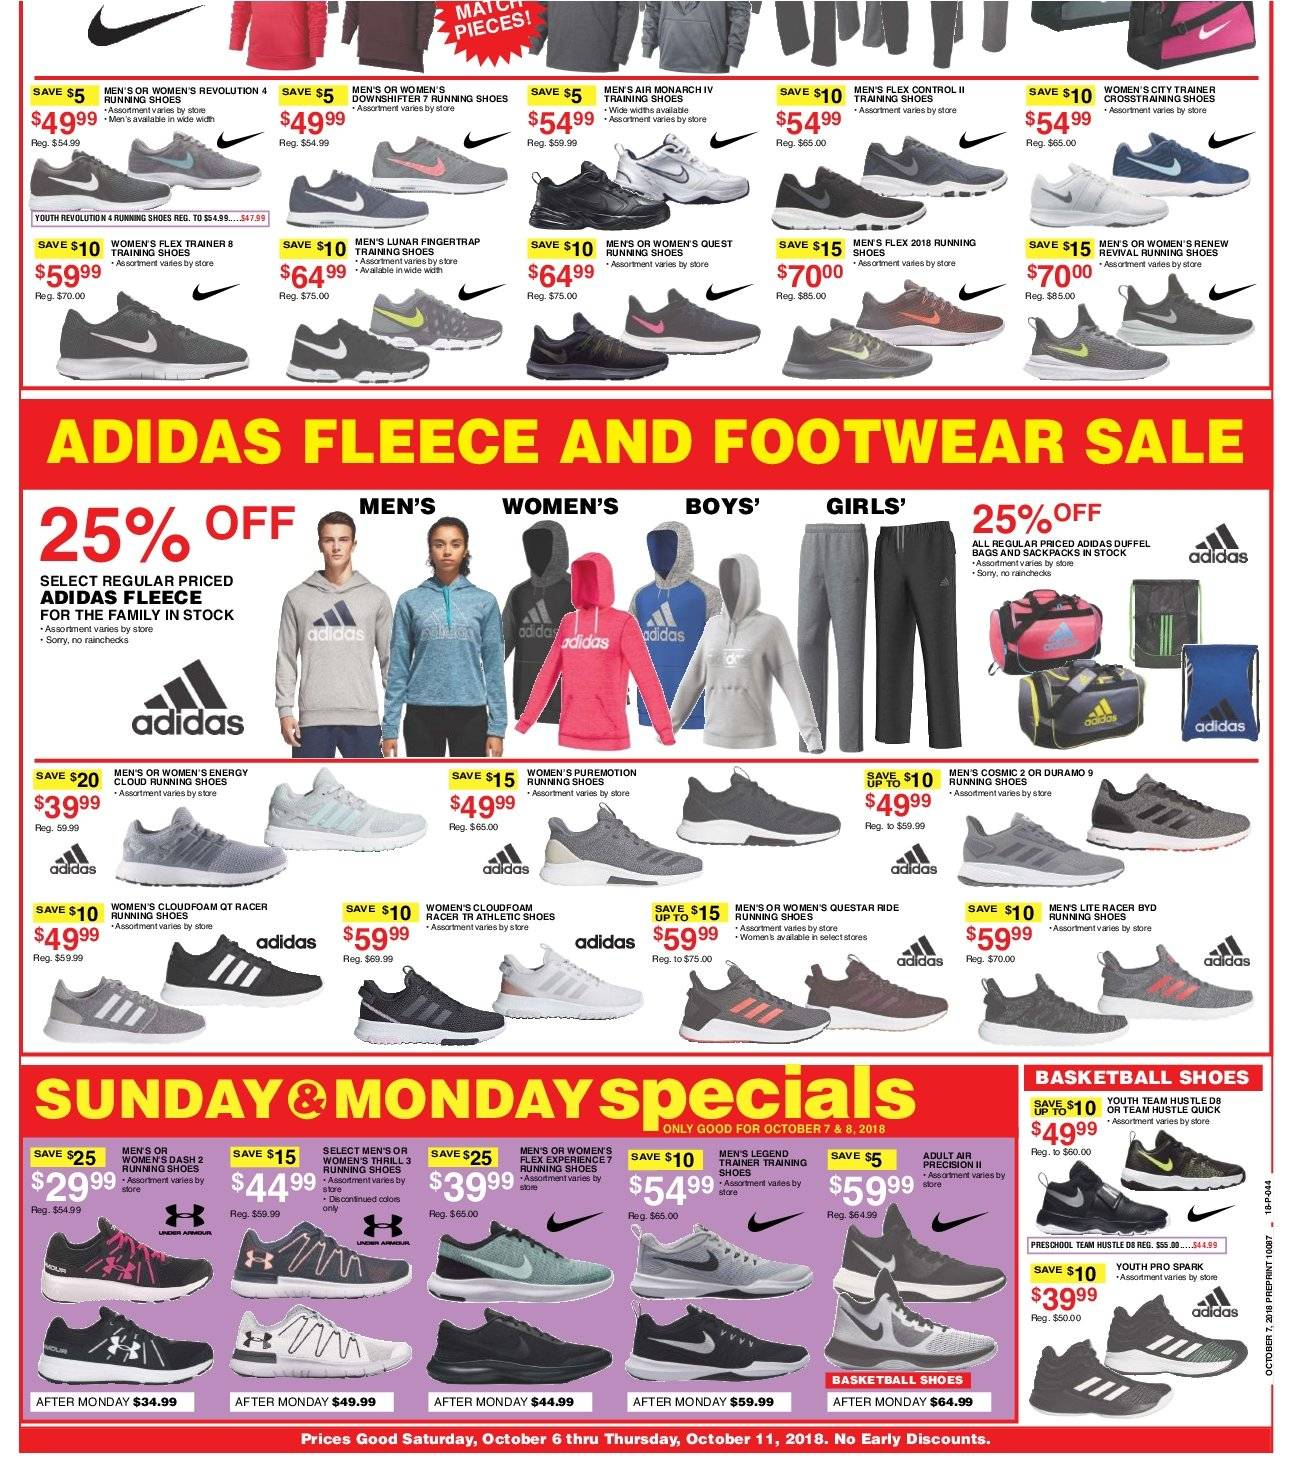 Dunham's Sports Flyer - 10.06.2018 - 10.11.2018 - Sales products - adidas, bag, running shoes, shoes, quick. Page 2.